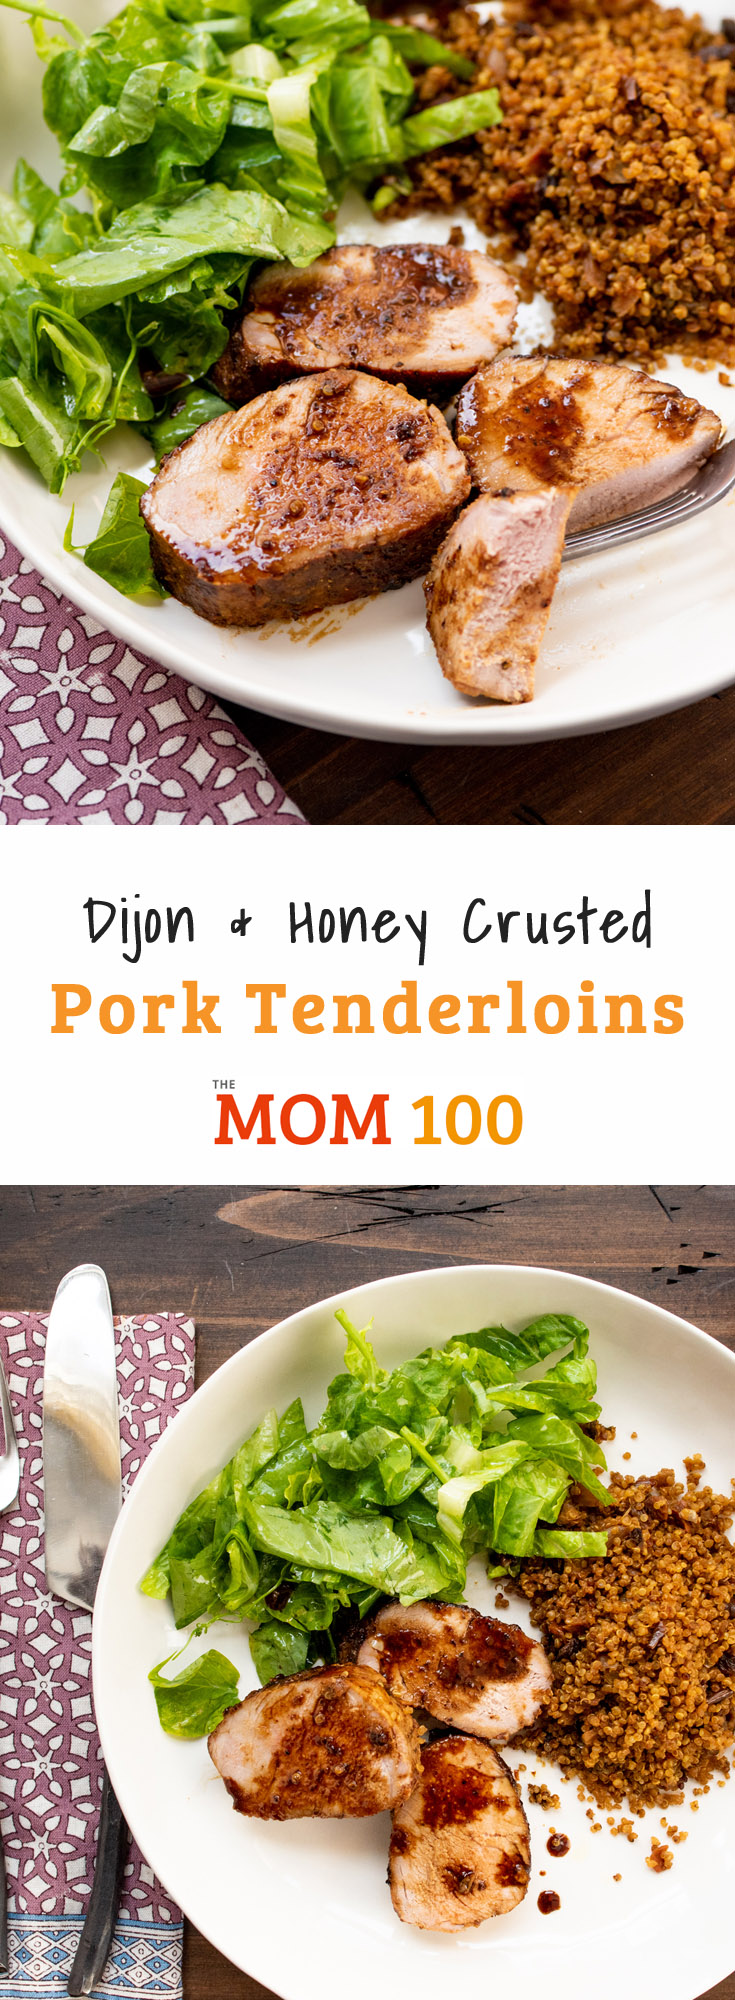 Dijon and Honey Crusted Pork Tenderloins are one of the most brilliant solutions to dinnertime. Inexpensive, quick, and easy to prepare.